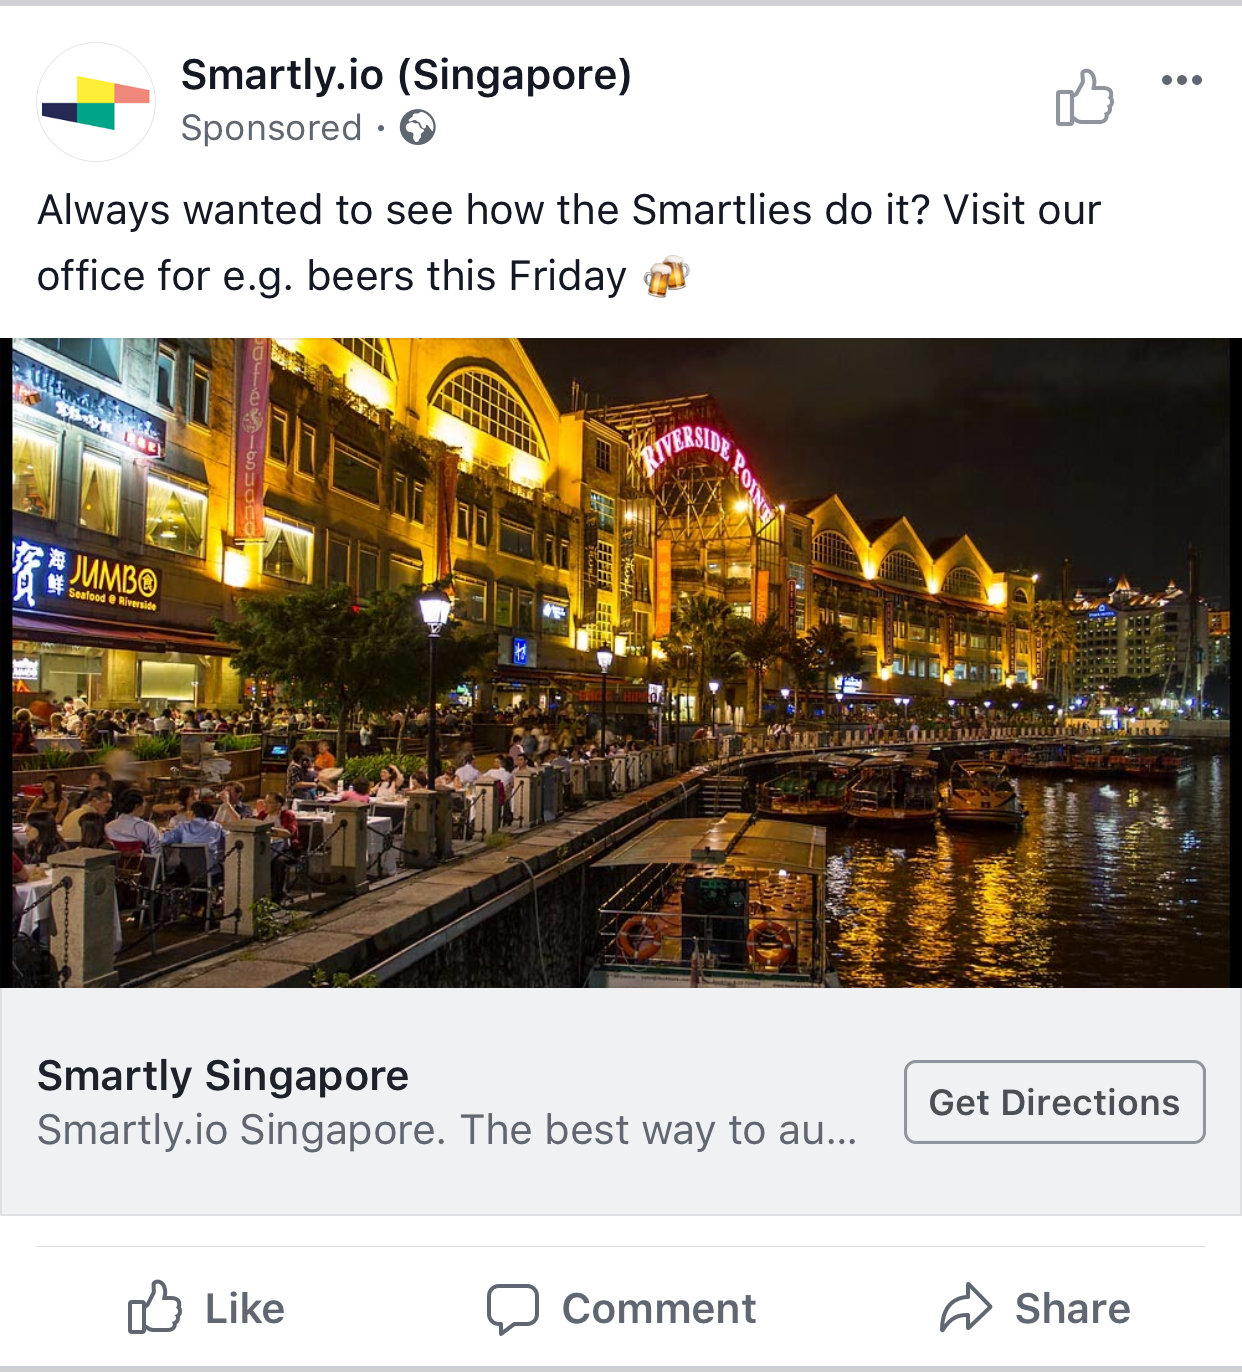 2018-02-15_smartly_singapore_get_directions_ad.png